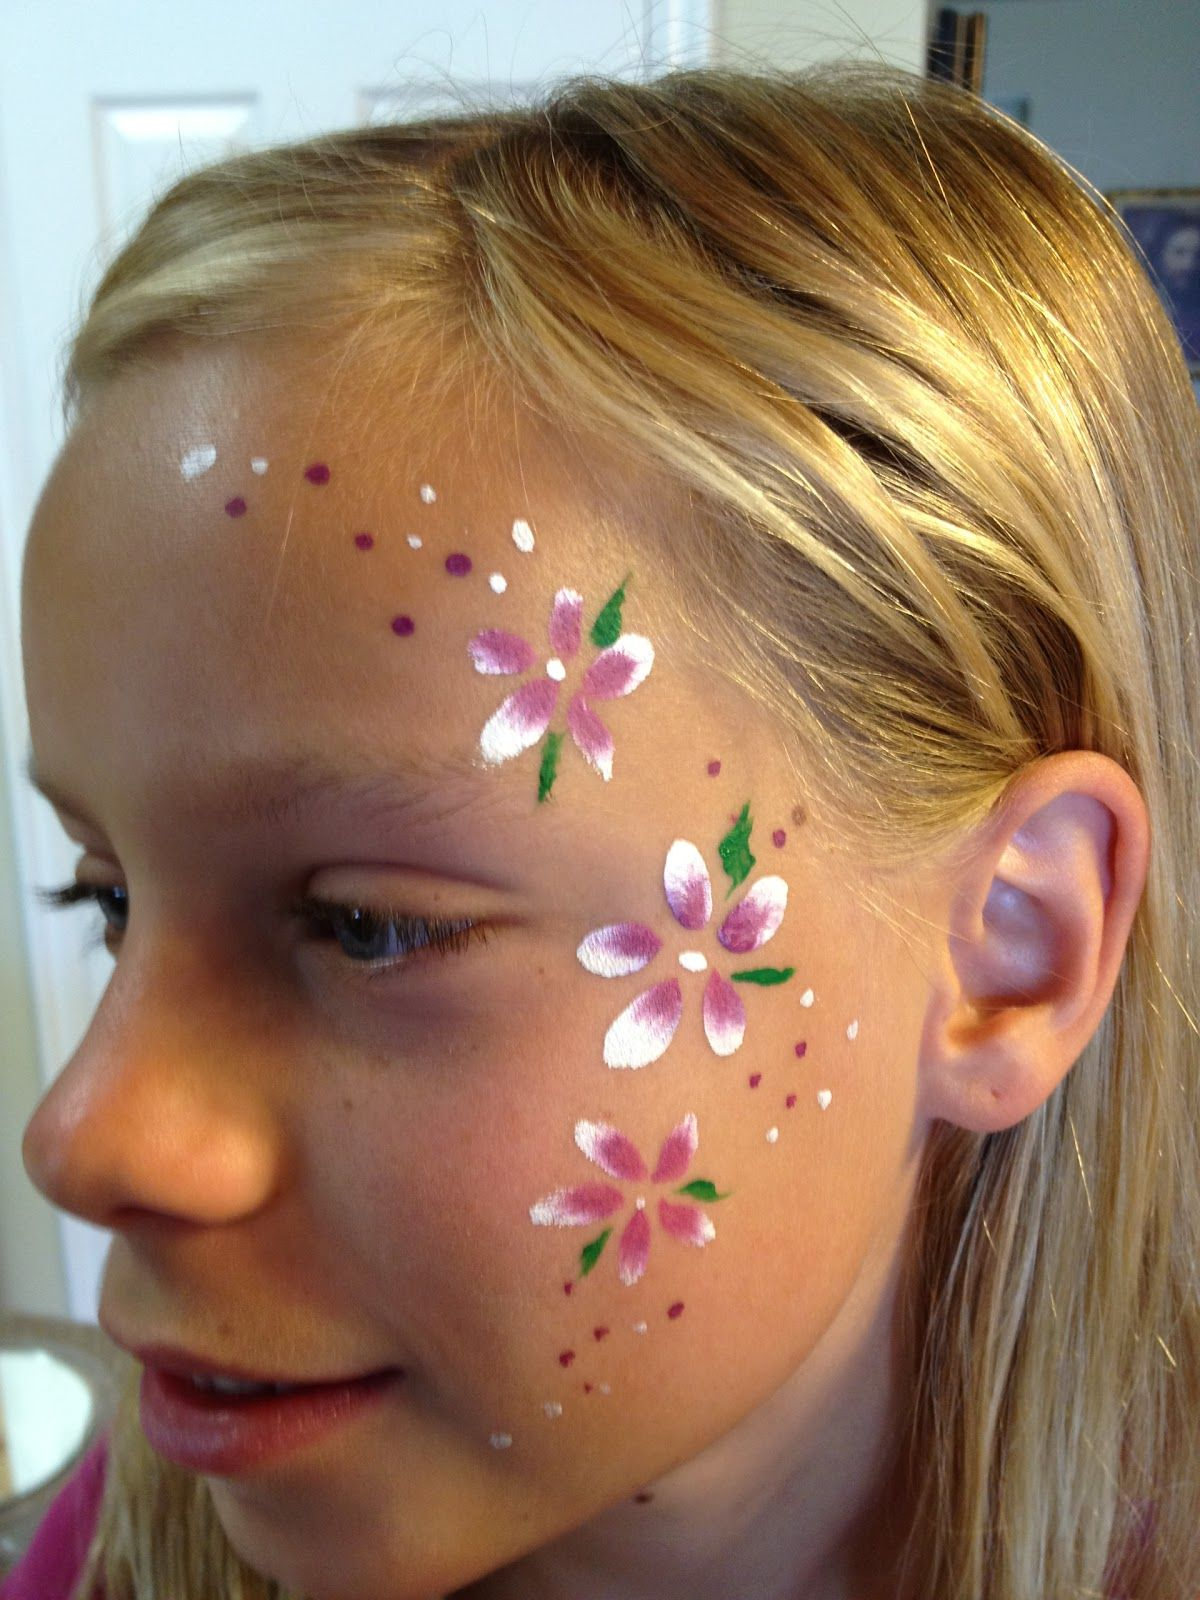 Uncategorized Simple Face Paintings simple face painting designs for cheeks bing images images